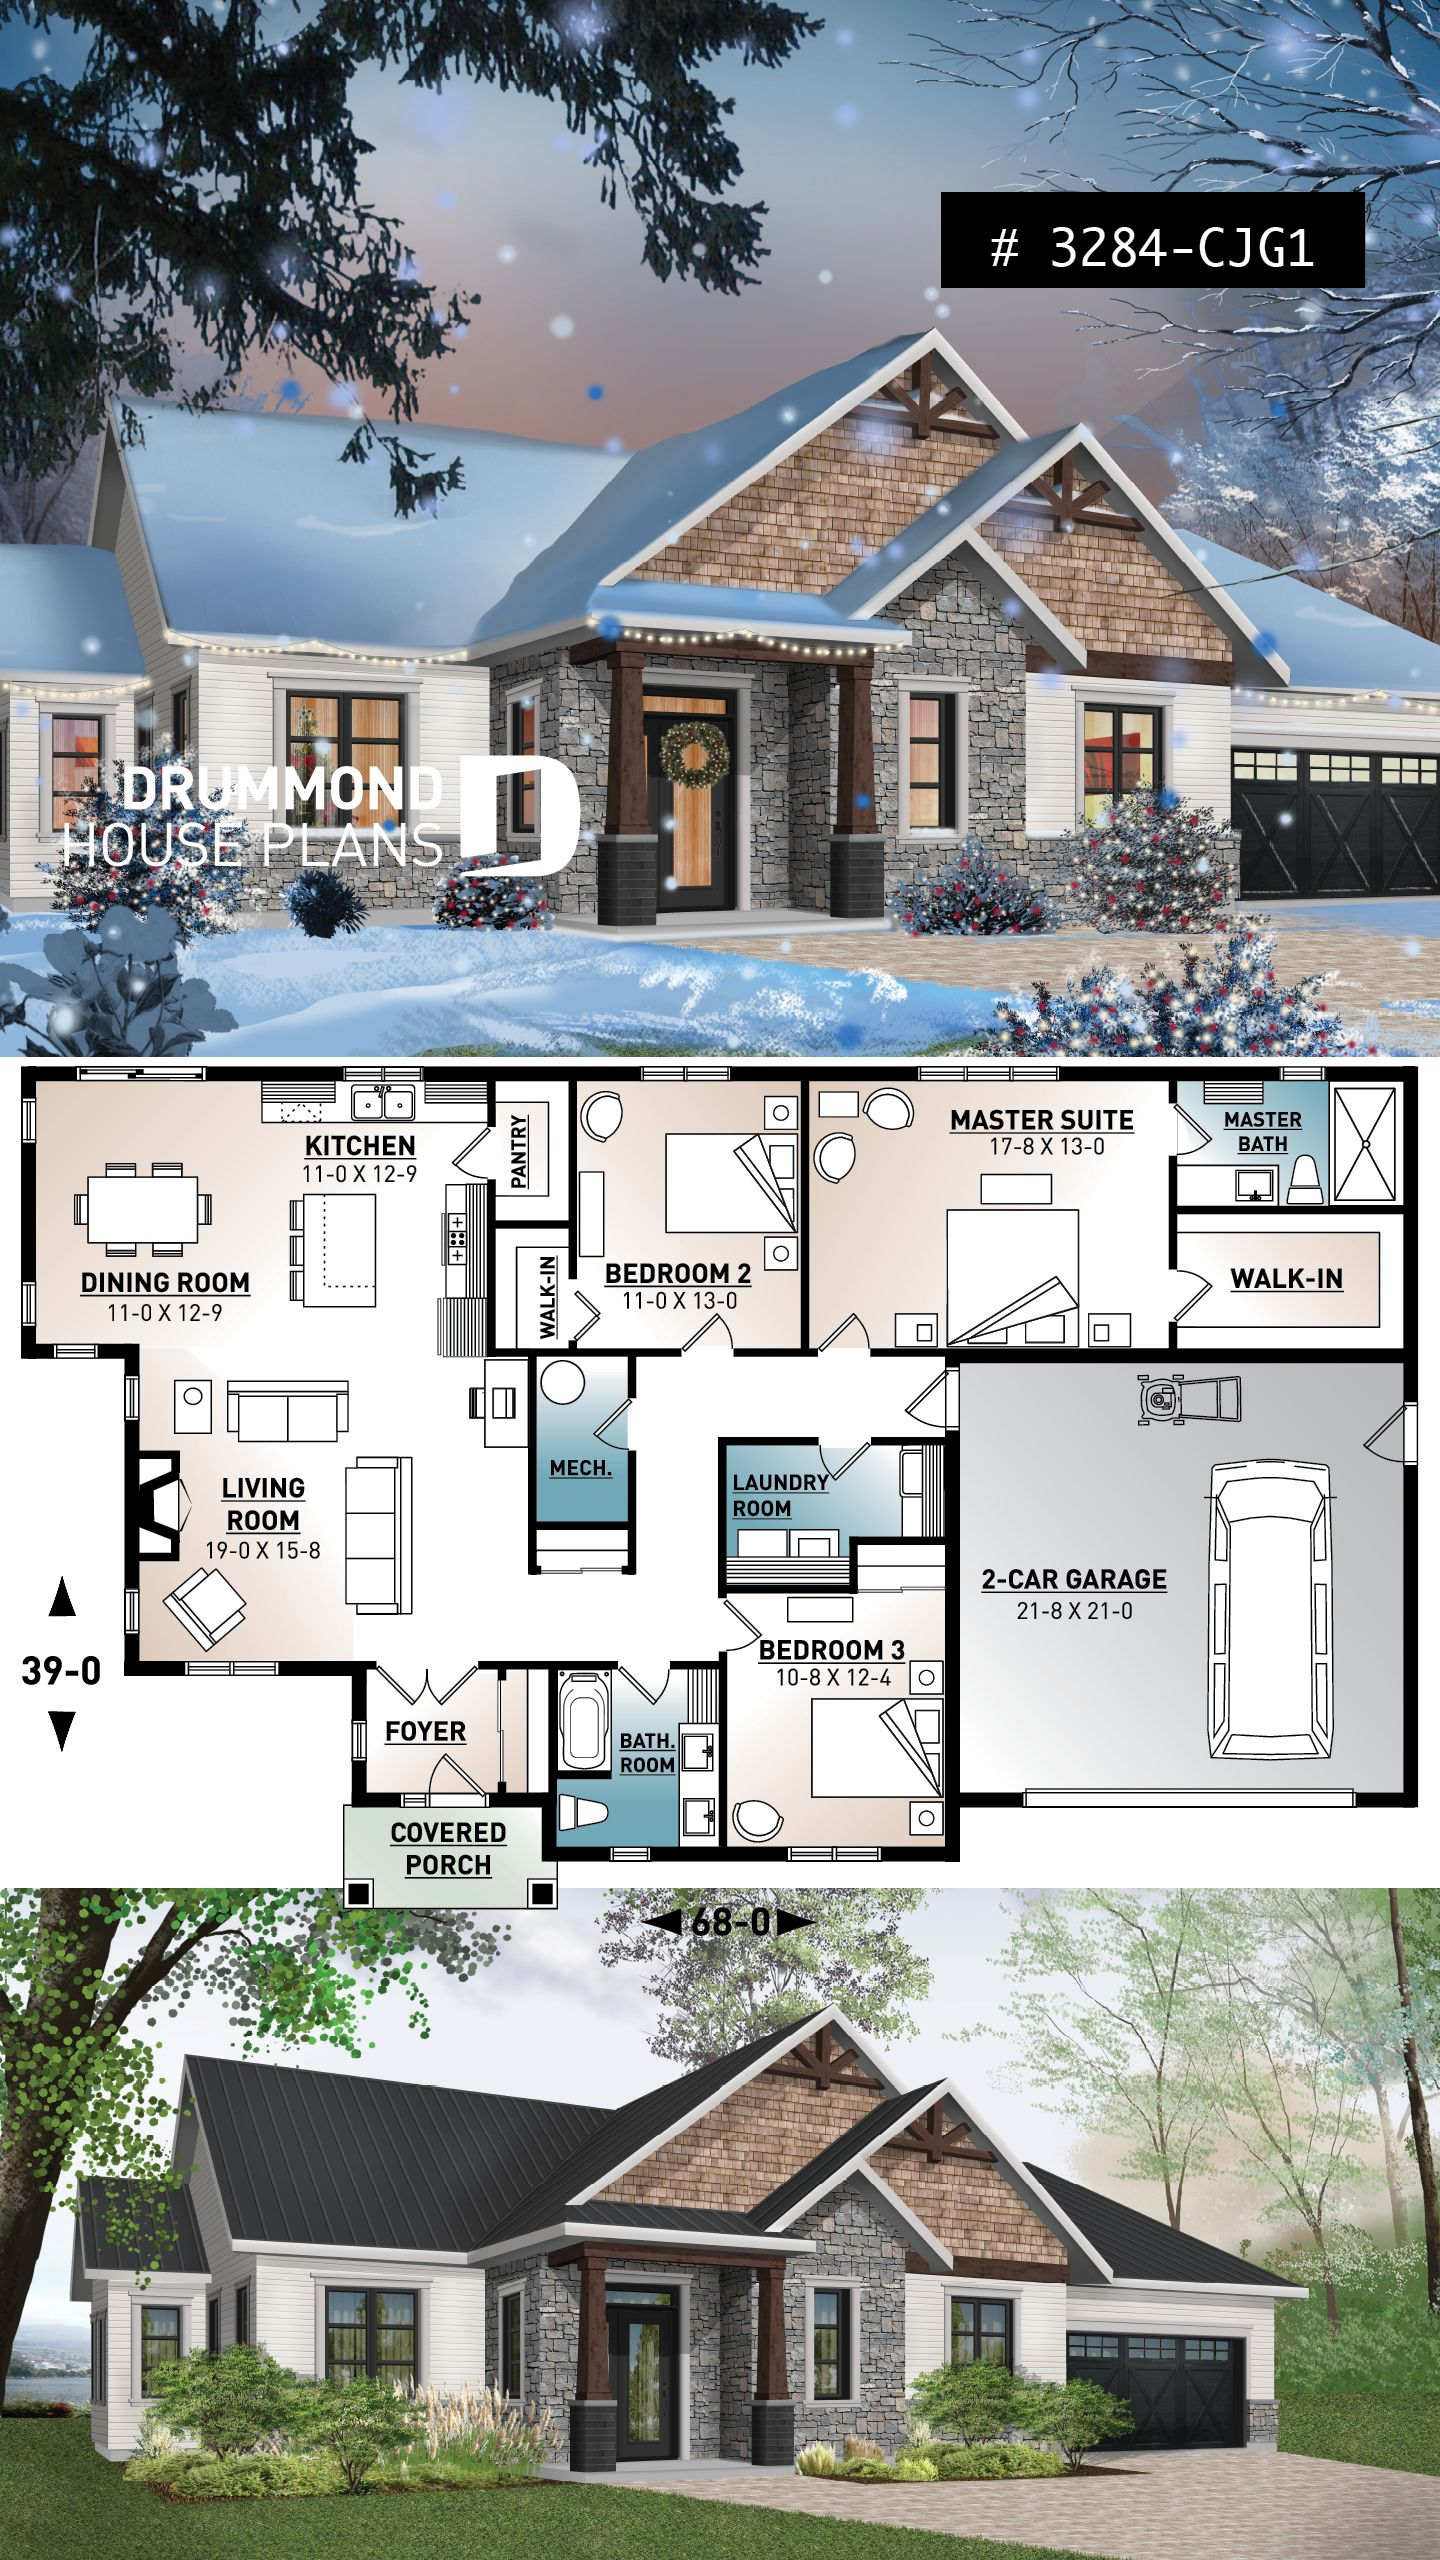 3 bedroom home plan, 9′ ceiling, large master suite, open layout, pantry, fireplace, laundry room – Craftsman & Northwest Home Designs